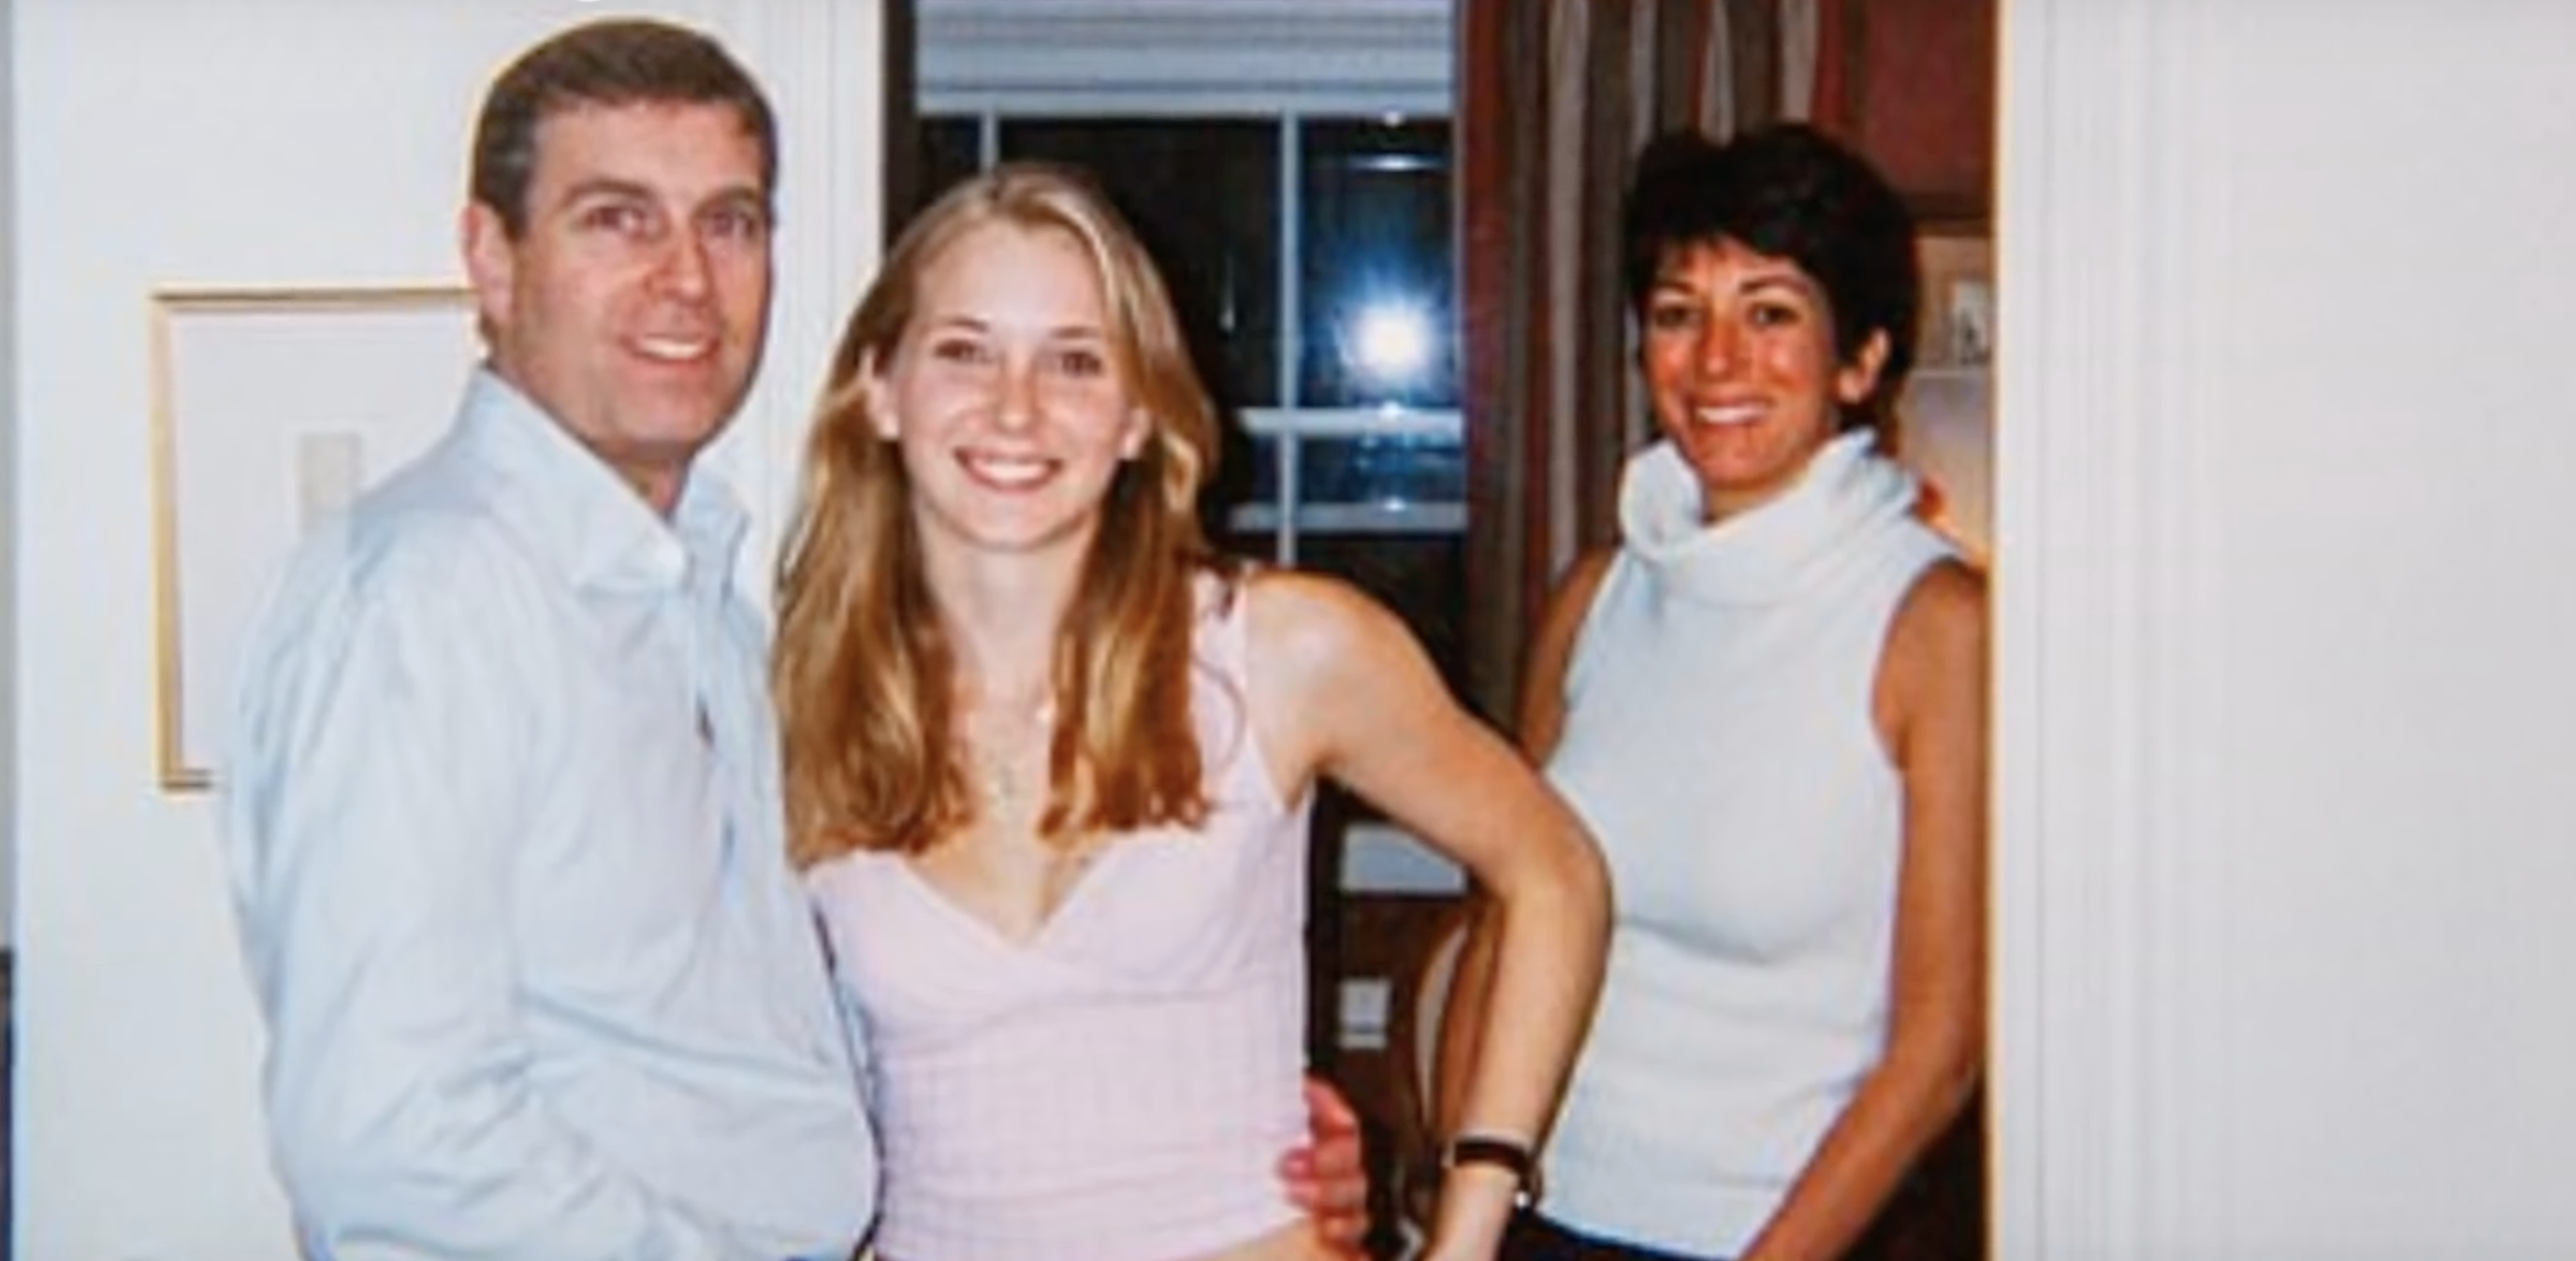 Prince Andrew (left) is seen with Virginia Roberts Giuffre (center) and Ghislaine Maxwell (right) in a photograph that the Duke of York has suggested could be fake. (Screenshot Youtube The Telegraph)